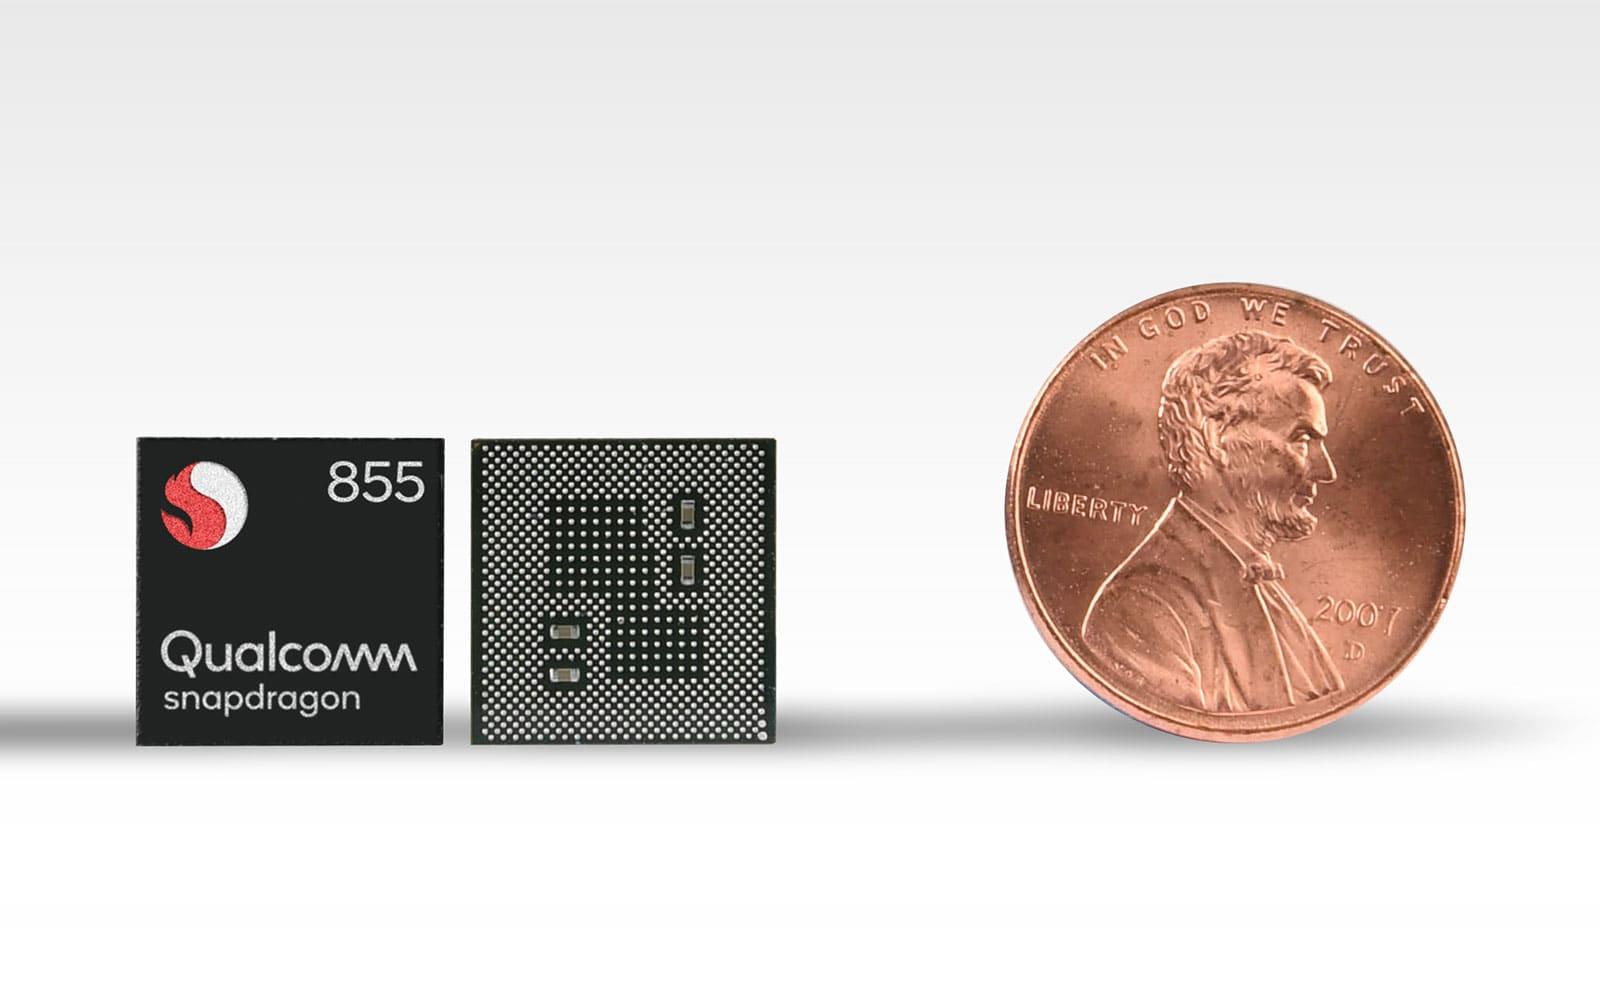 Qualcomm Snapdragon 855 chipset